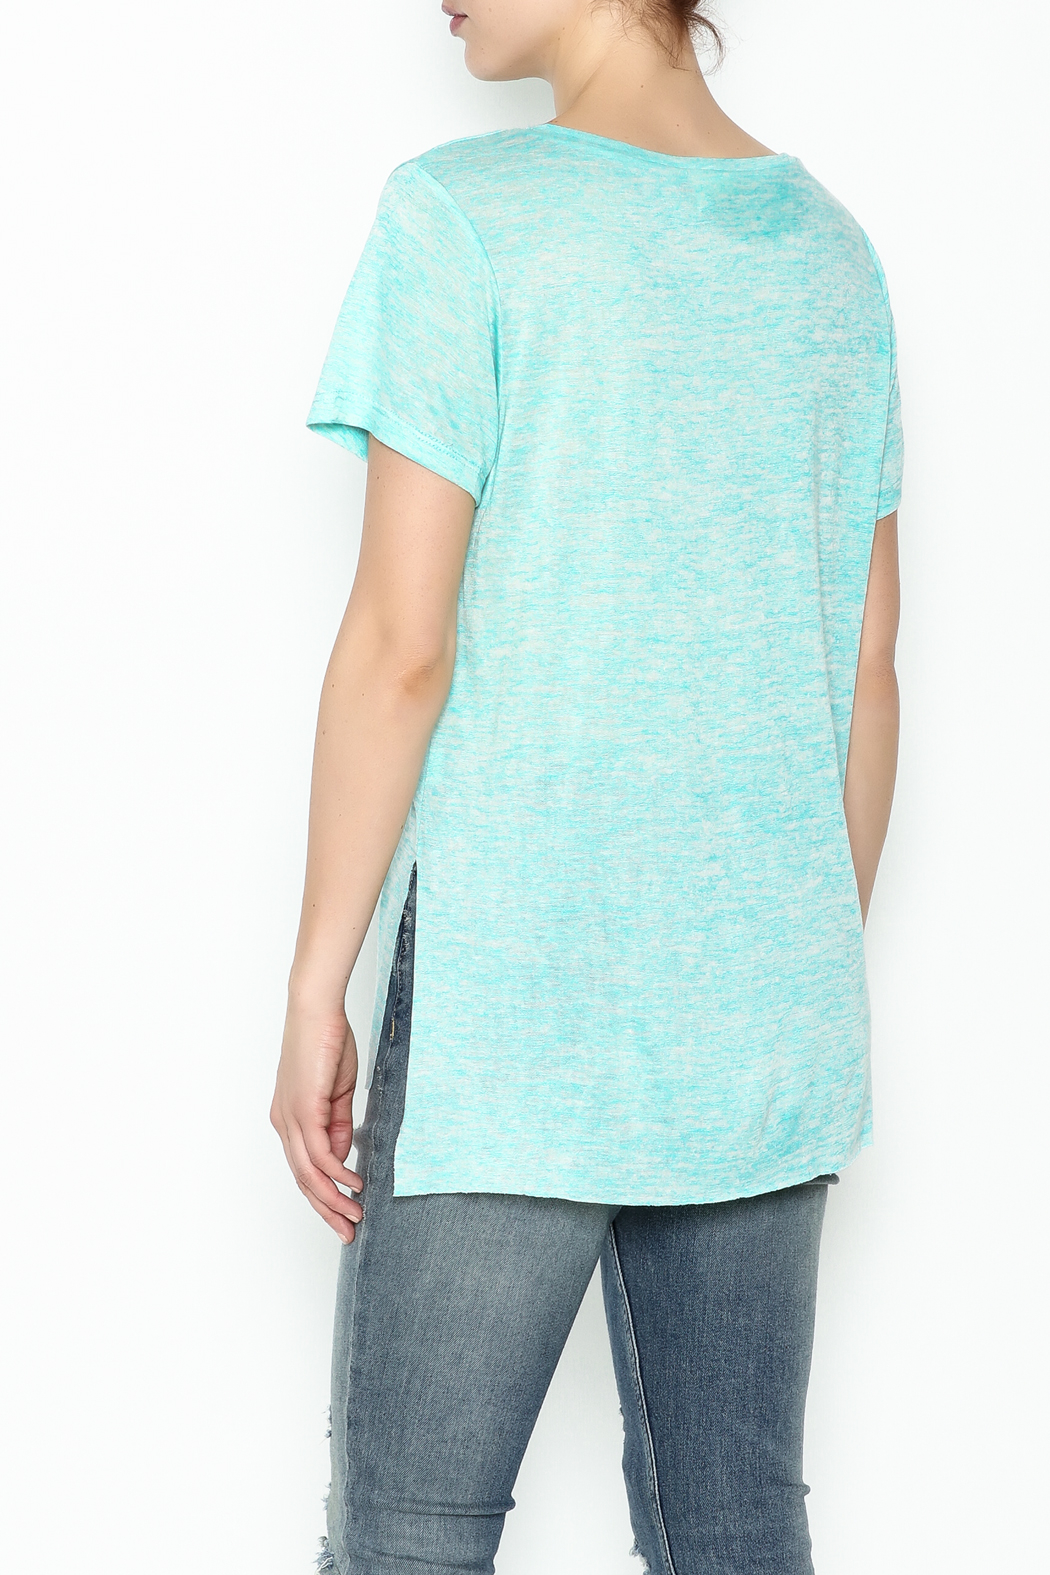 Daisey Ray One More Drink Tee - Back Cropped Image